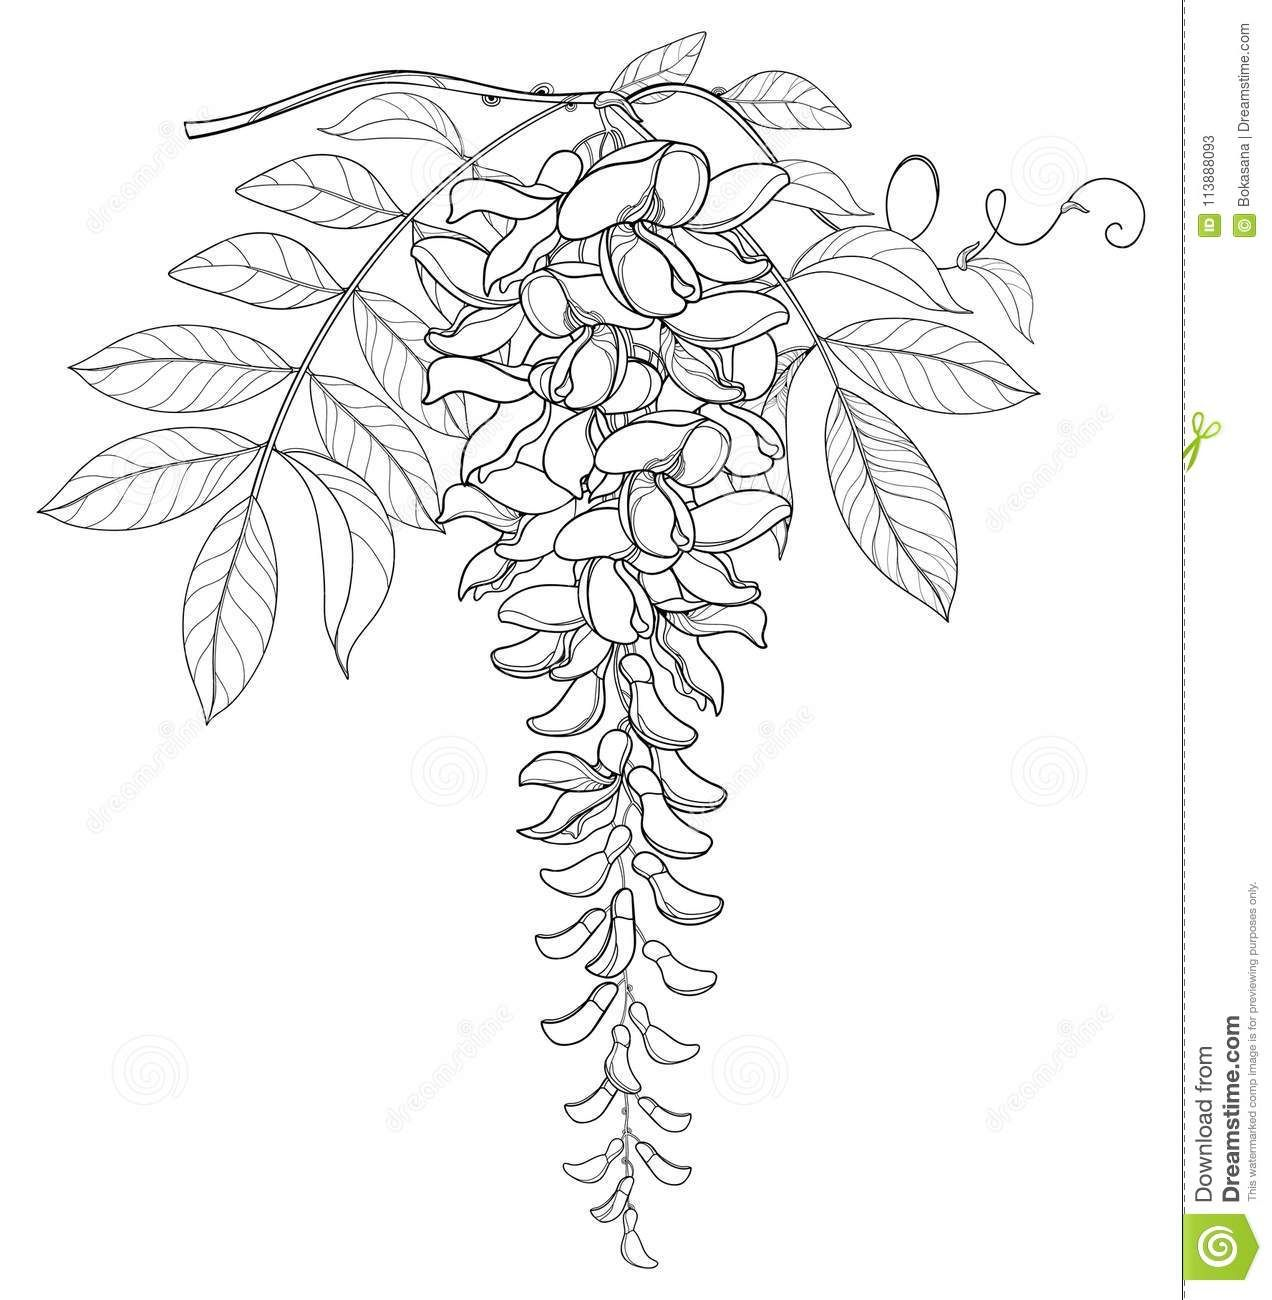 Vector Branch Of Outline Wisteria Or Wistaria Flower Bunch Bud And Leaf In Black Isolated On White Backgr Flower Line Drawings Flower Drawing Sharpie Drawings